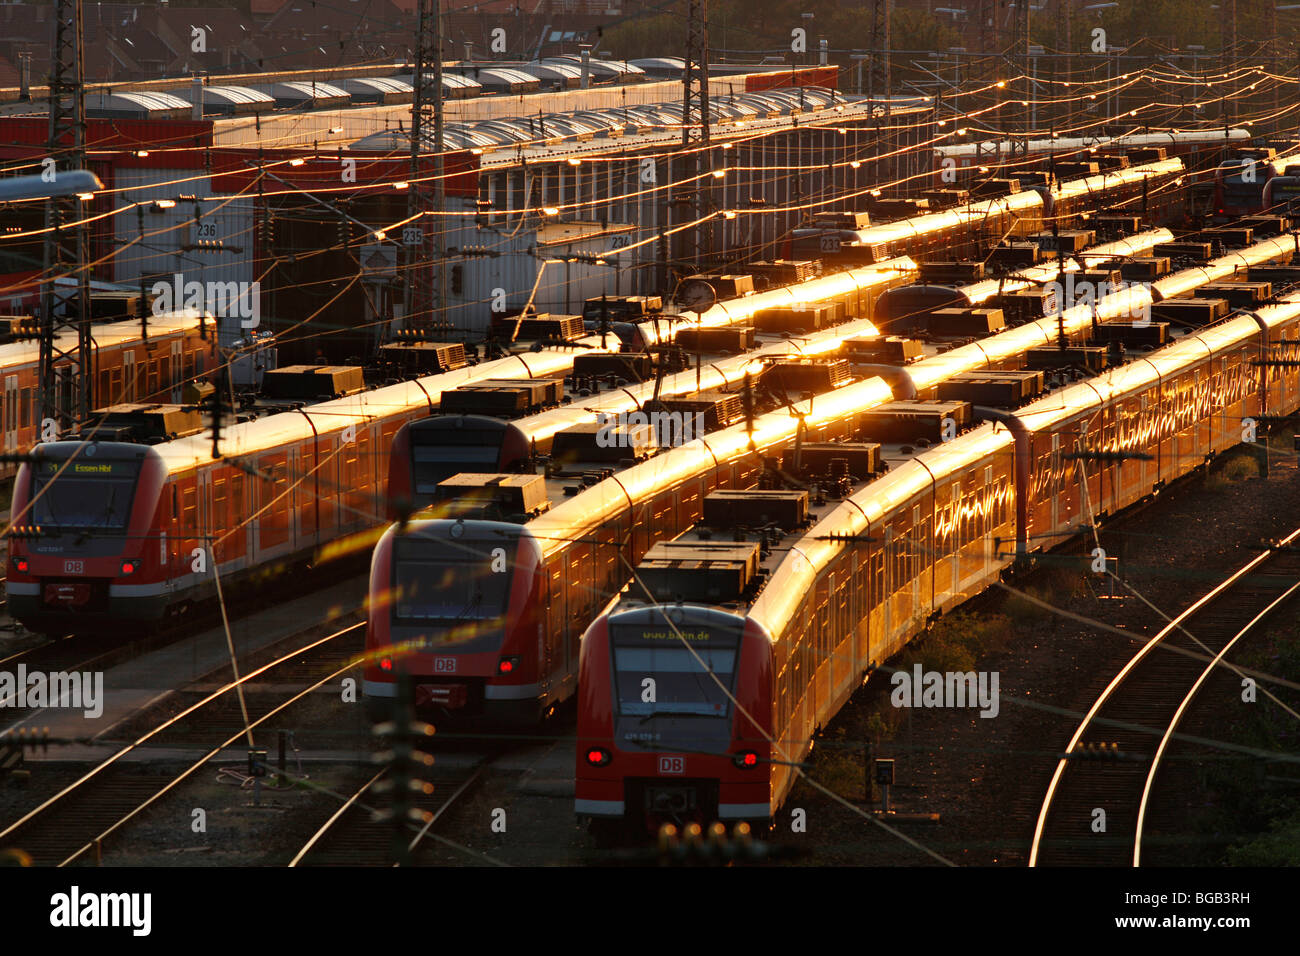 city trains on tracks in front of the central Station, Essen, Germany, Europe. Stock Photo